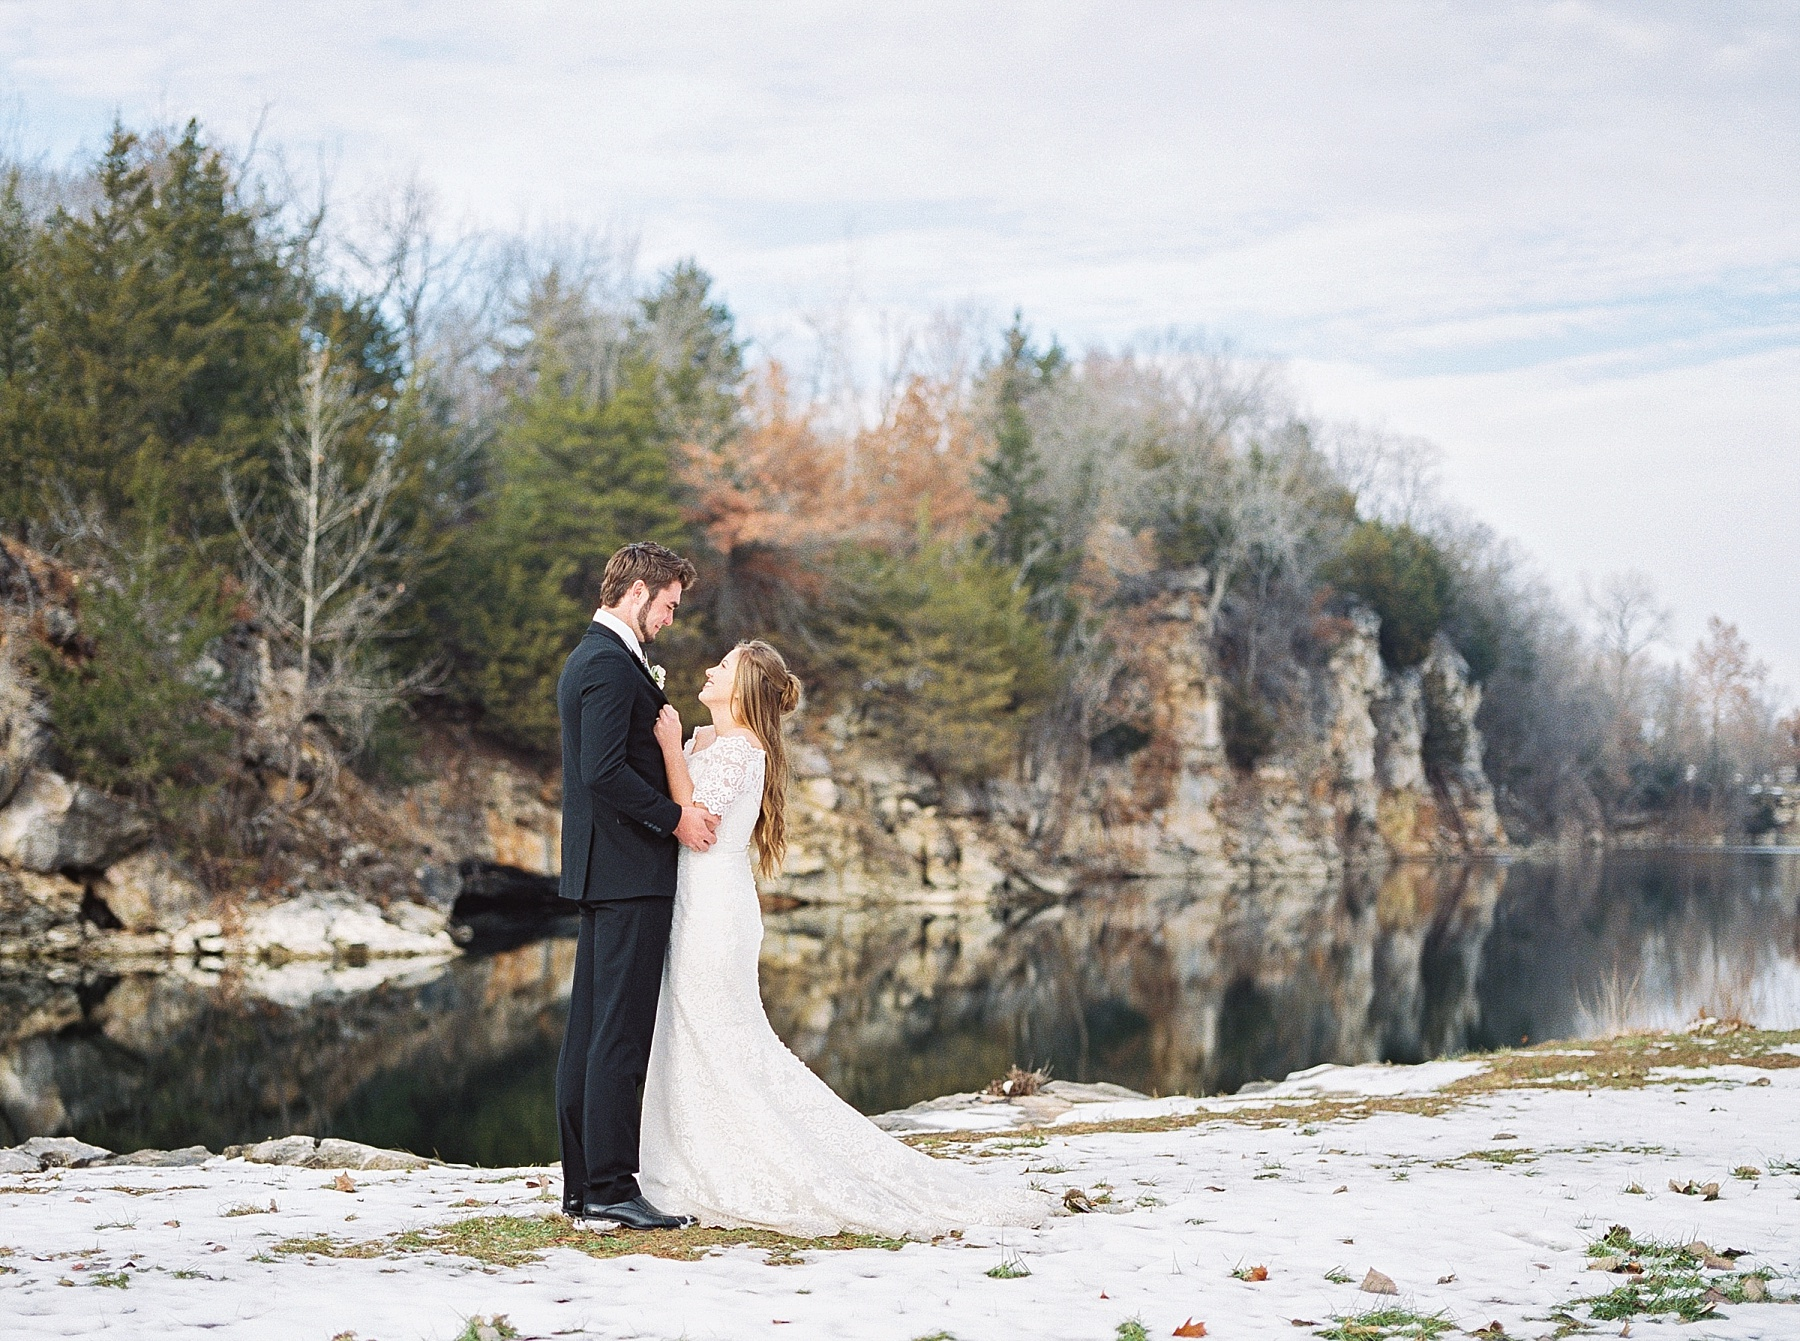 Snowy Winter Wedding at Wildcliff Events Lake With Earthy Jewel Tones and Organic Refined Style by Kelsi Kliethermes Photography Kansas City Missouri Wedding Photographer_0067.jpg